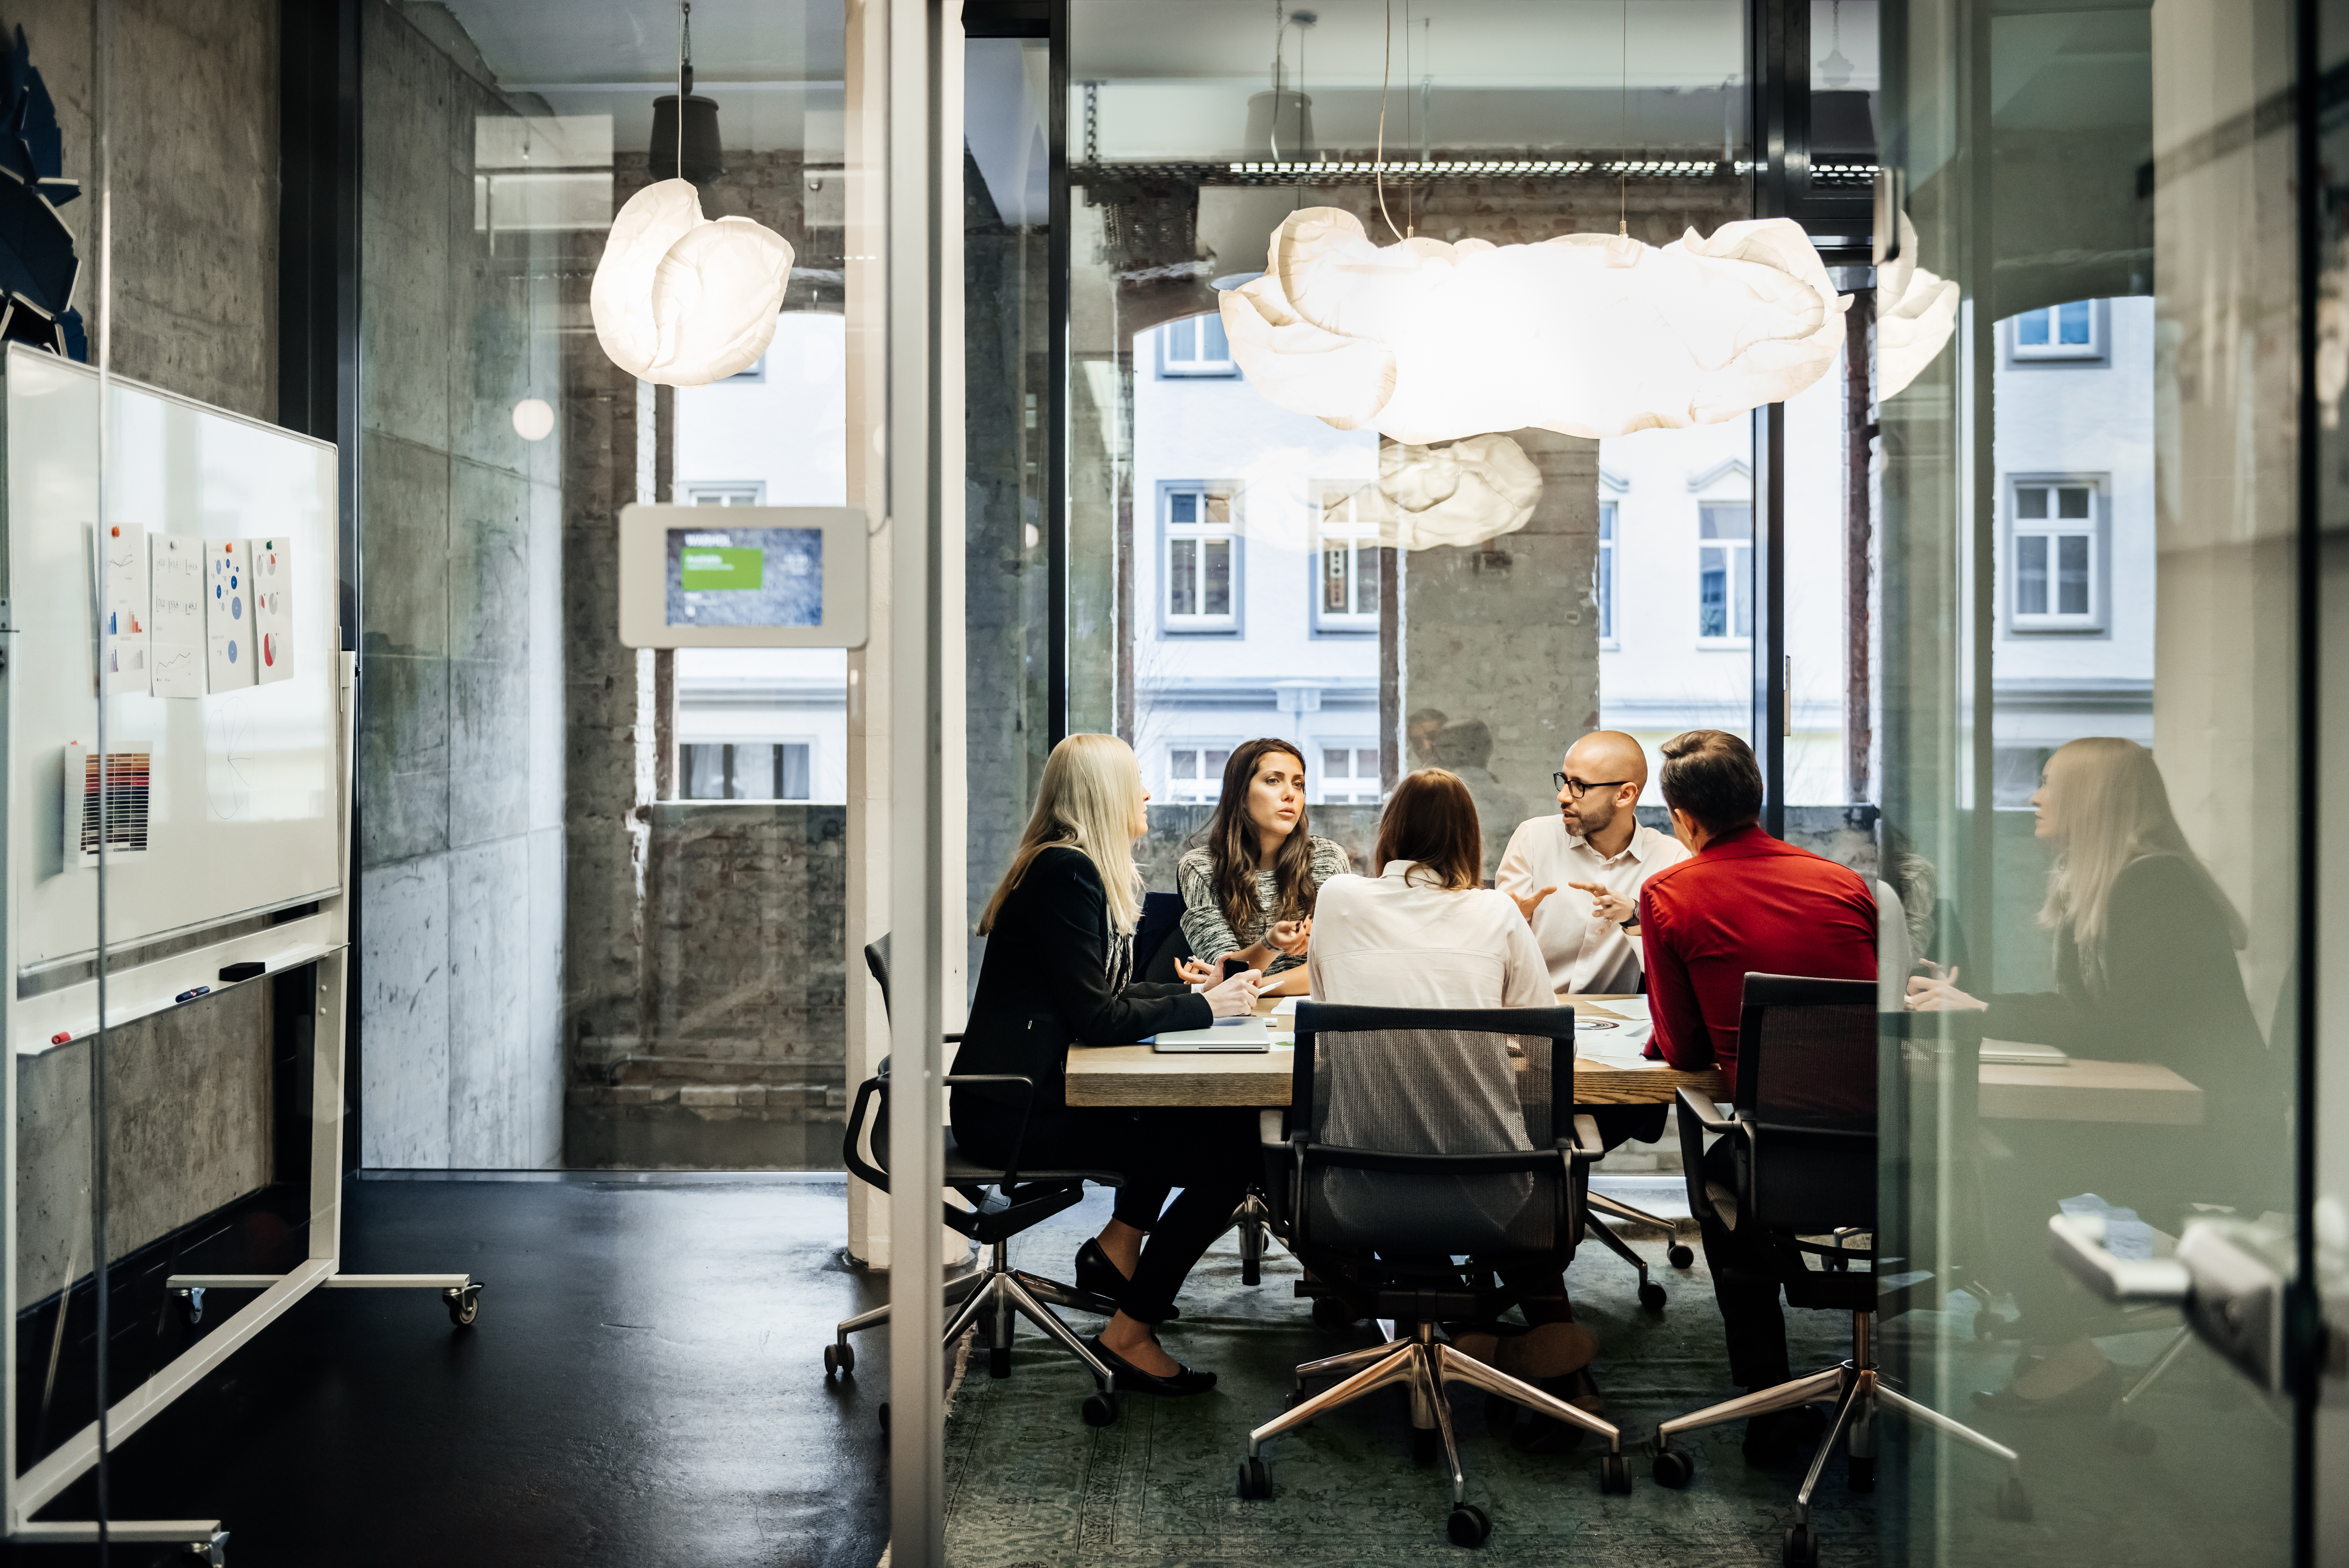 A group of people is sitting at a table during a business meeting in a bright, modern office. The team is talking business while pie charts can be seen hanging on the wall. Big bright windows are seen in the background.